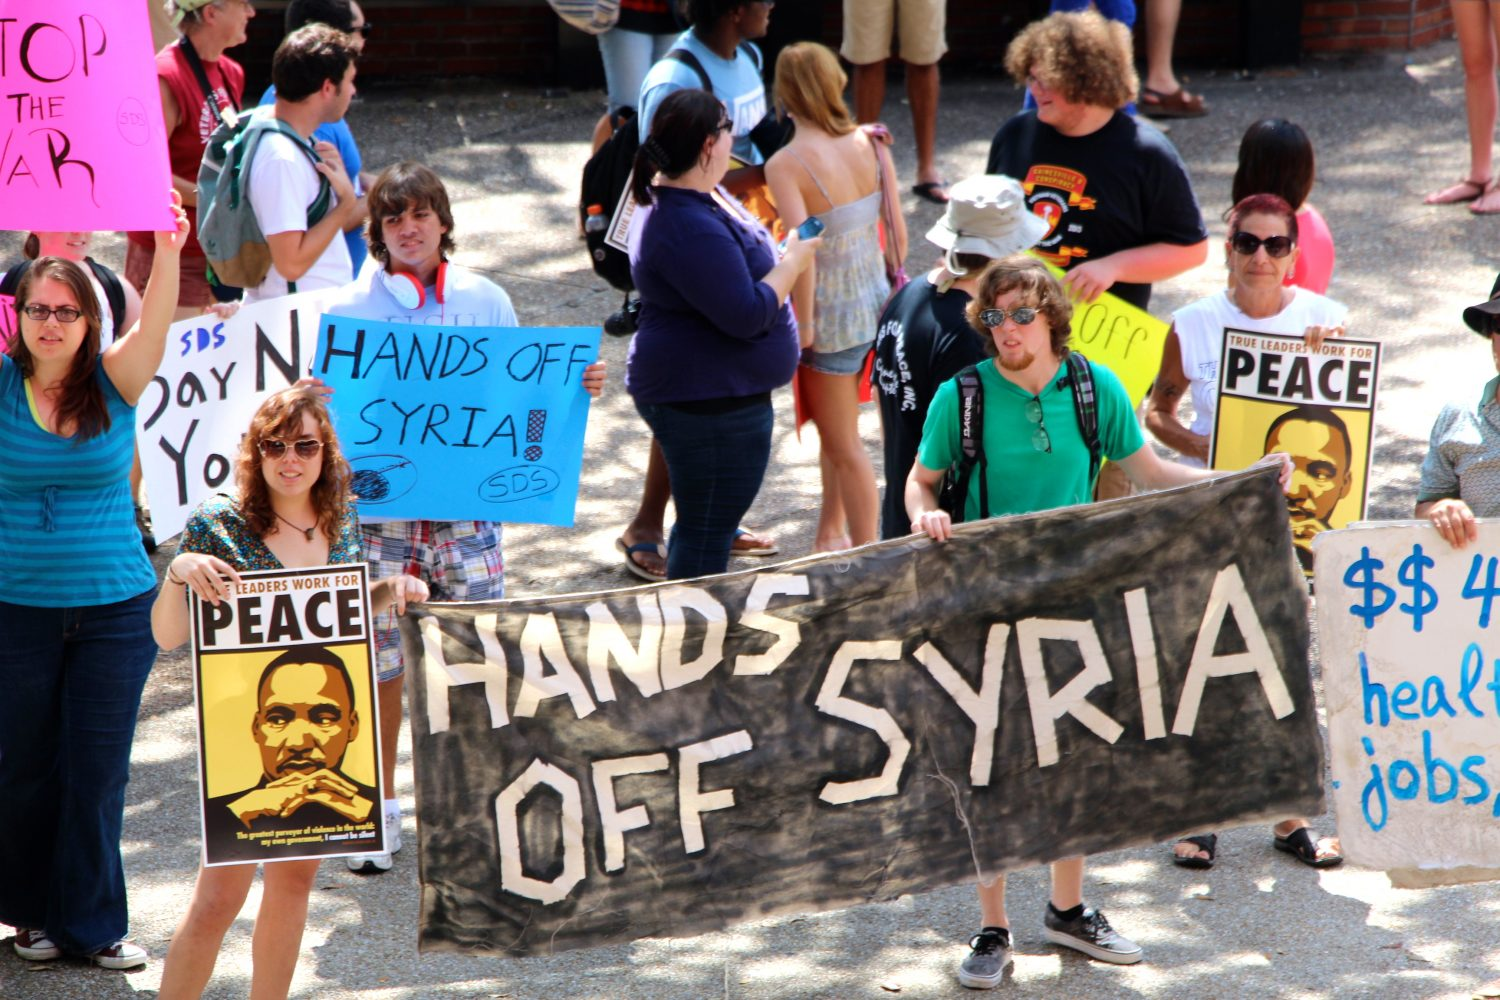 Close to 30 protesters showed up at the anti-war rally at UF's Turlington Plaza Friday.